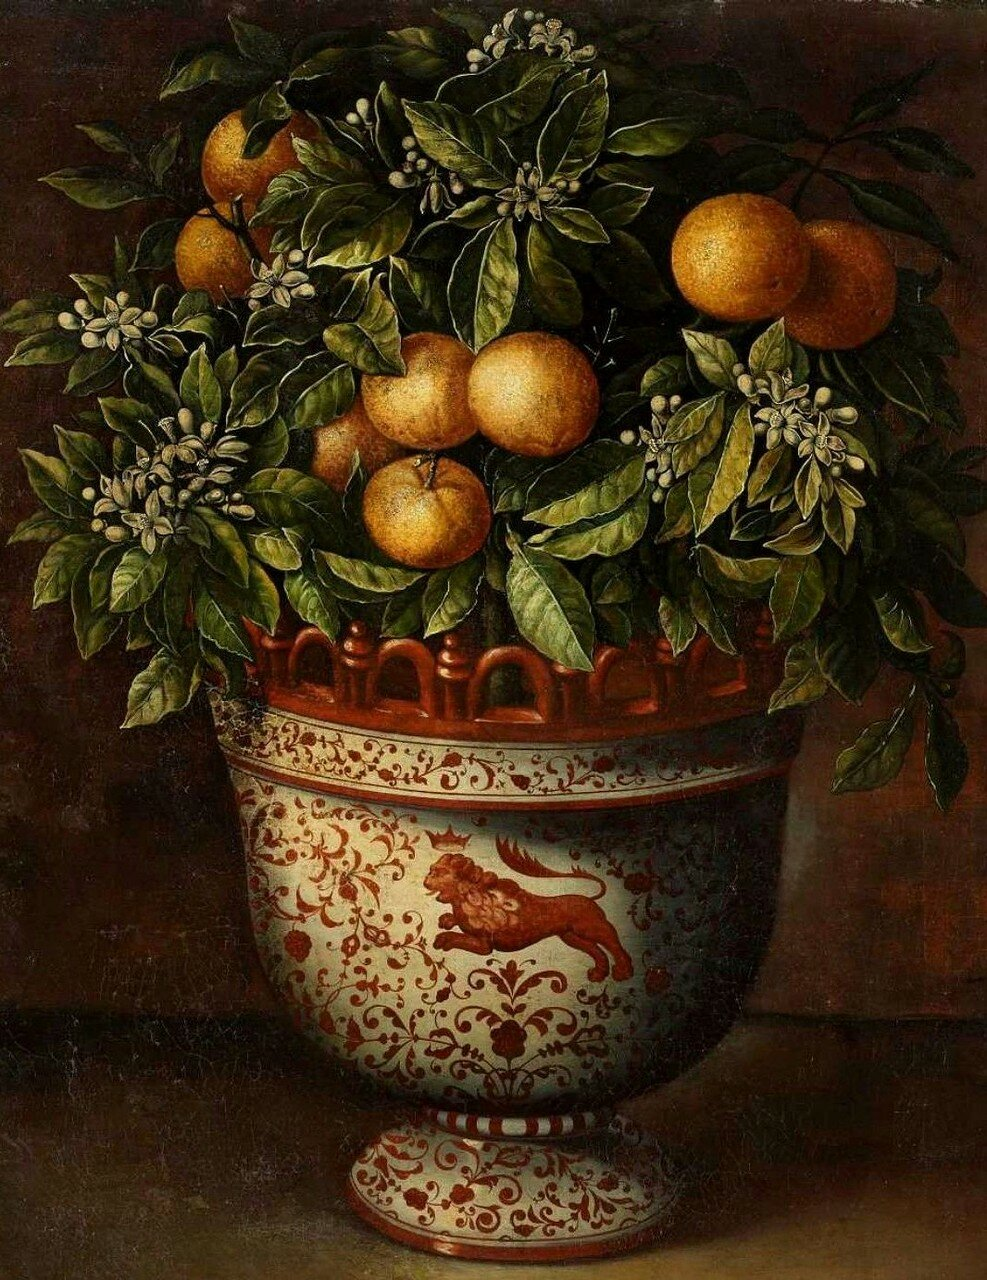 """A Painted Ceramic Vase with an Orange Tree."" No date. Oil on canvas."